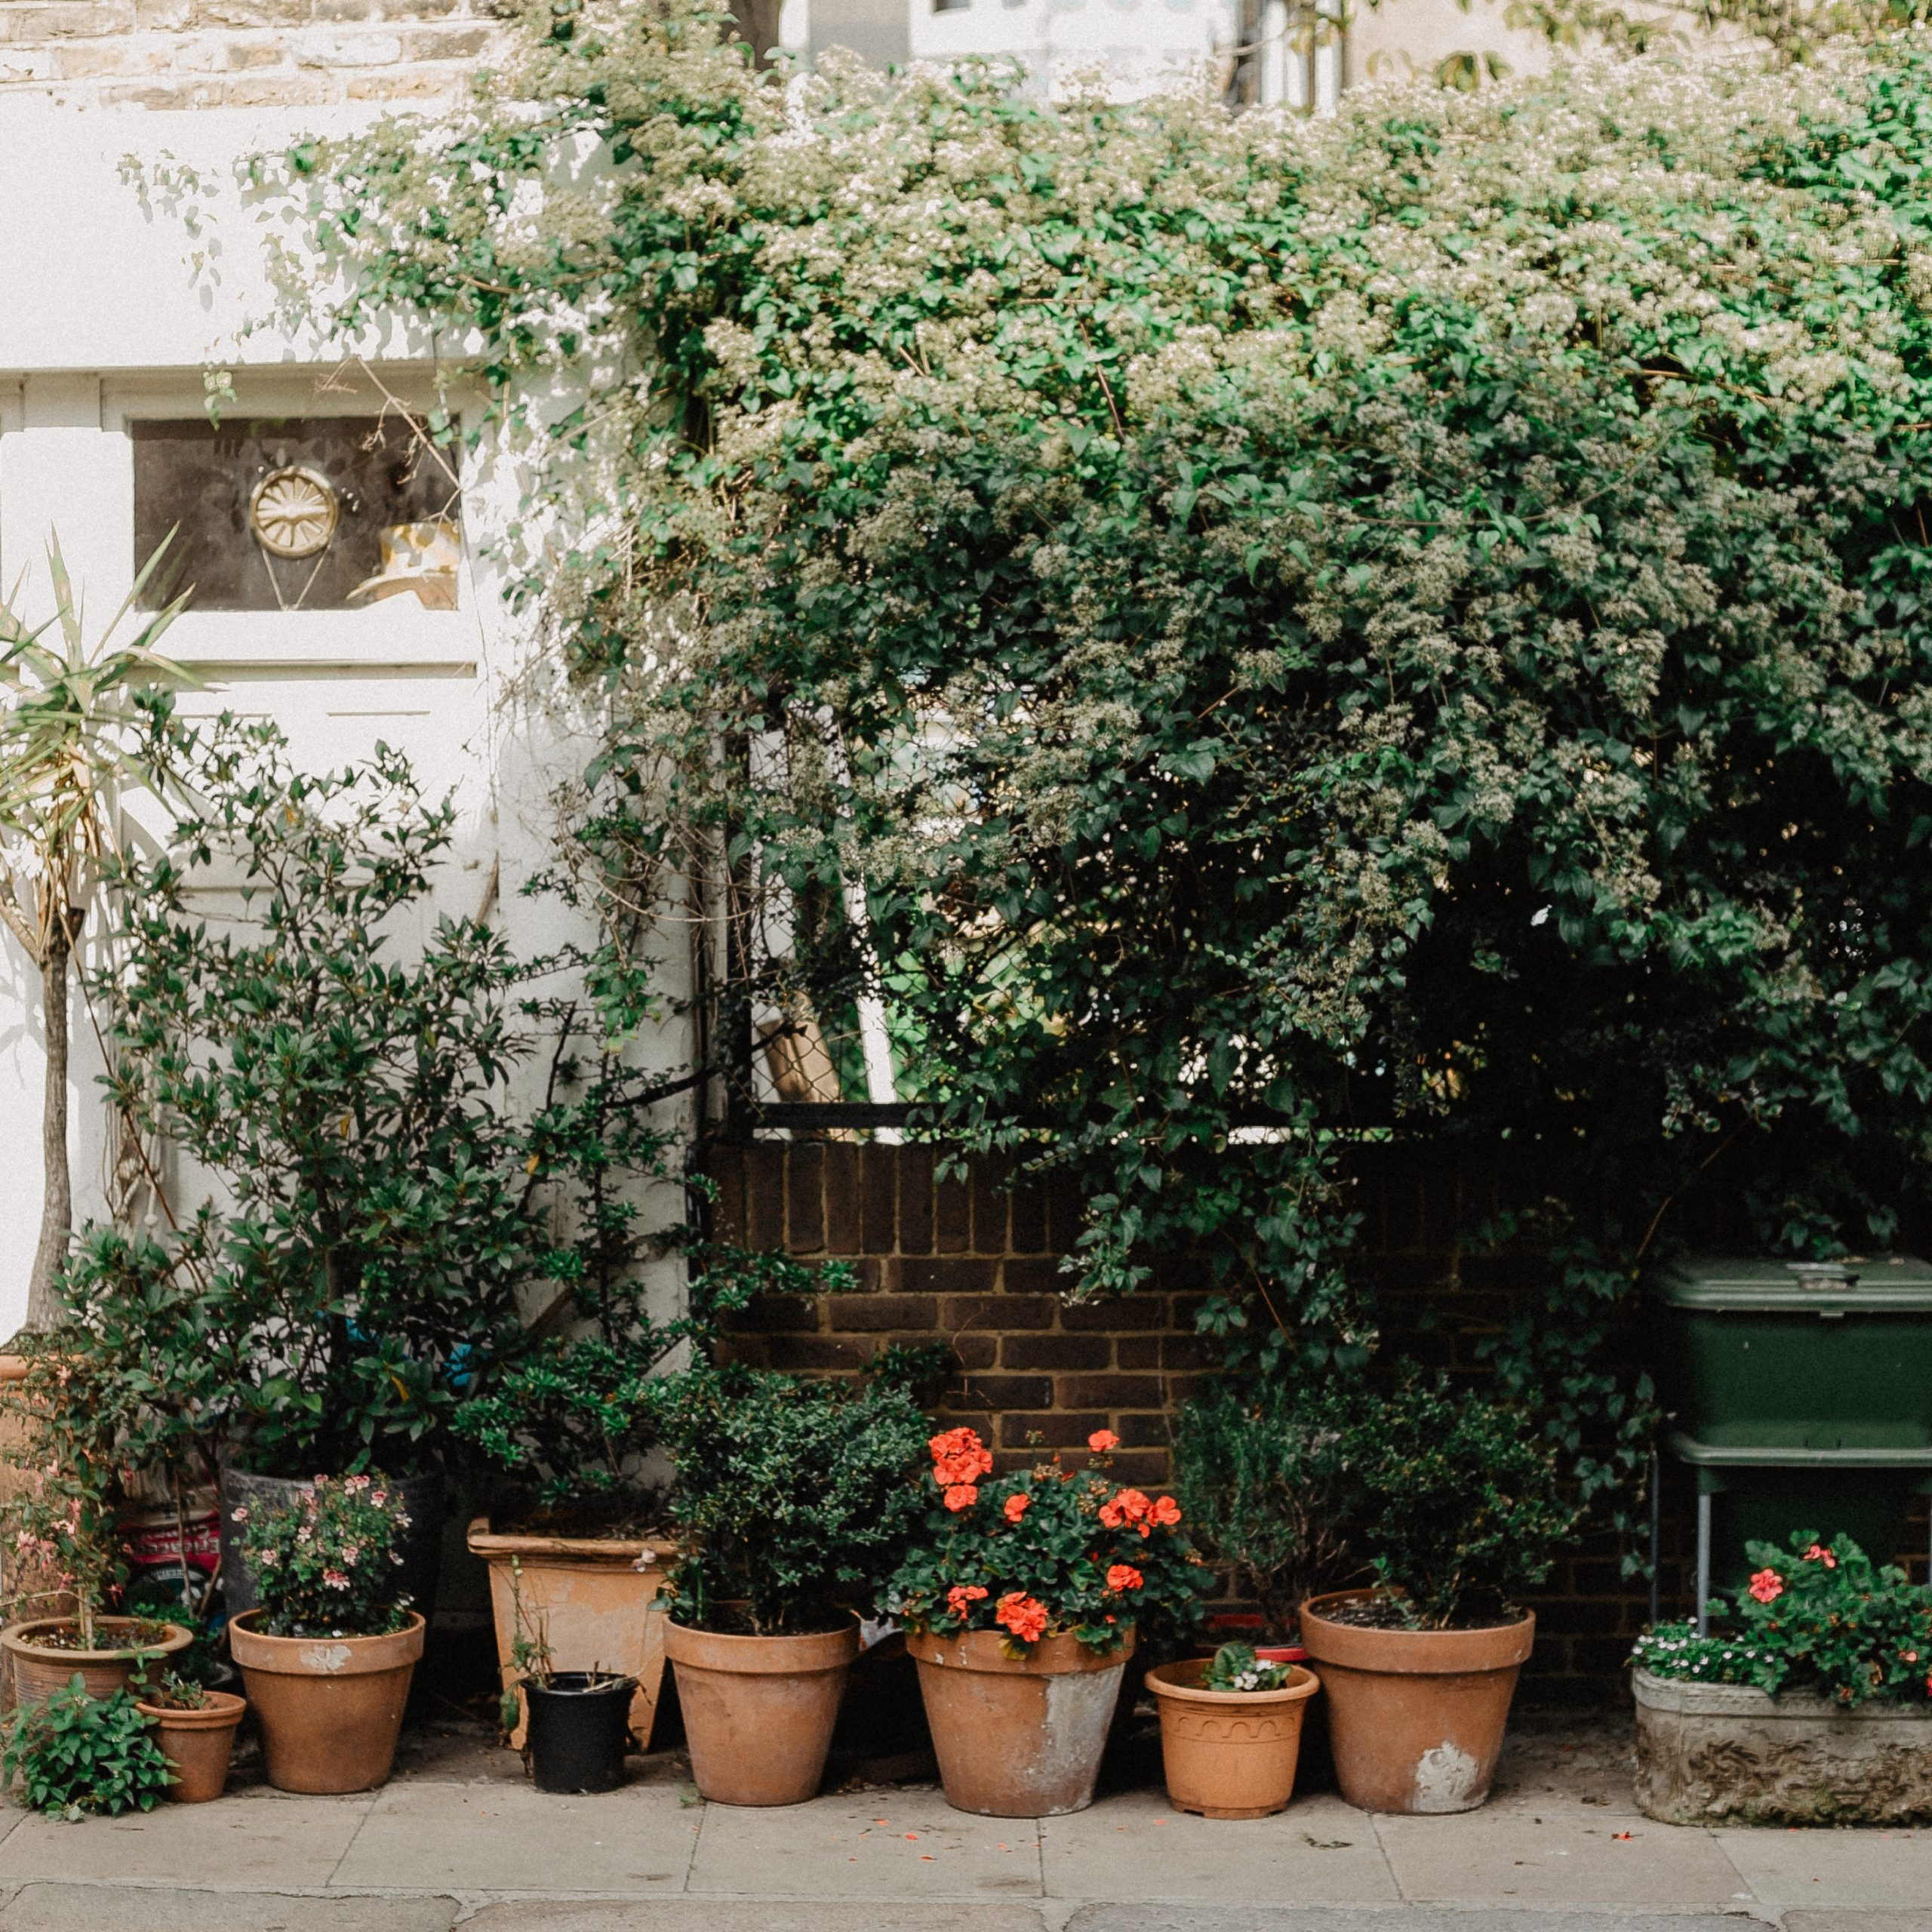 The potted plants in the garden of a luxury home   Brittany Corporation